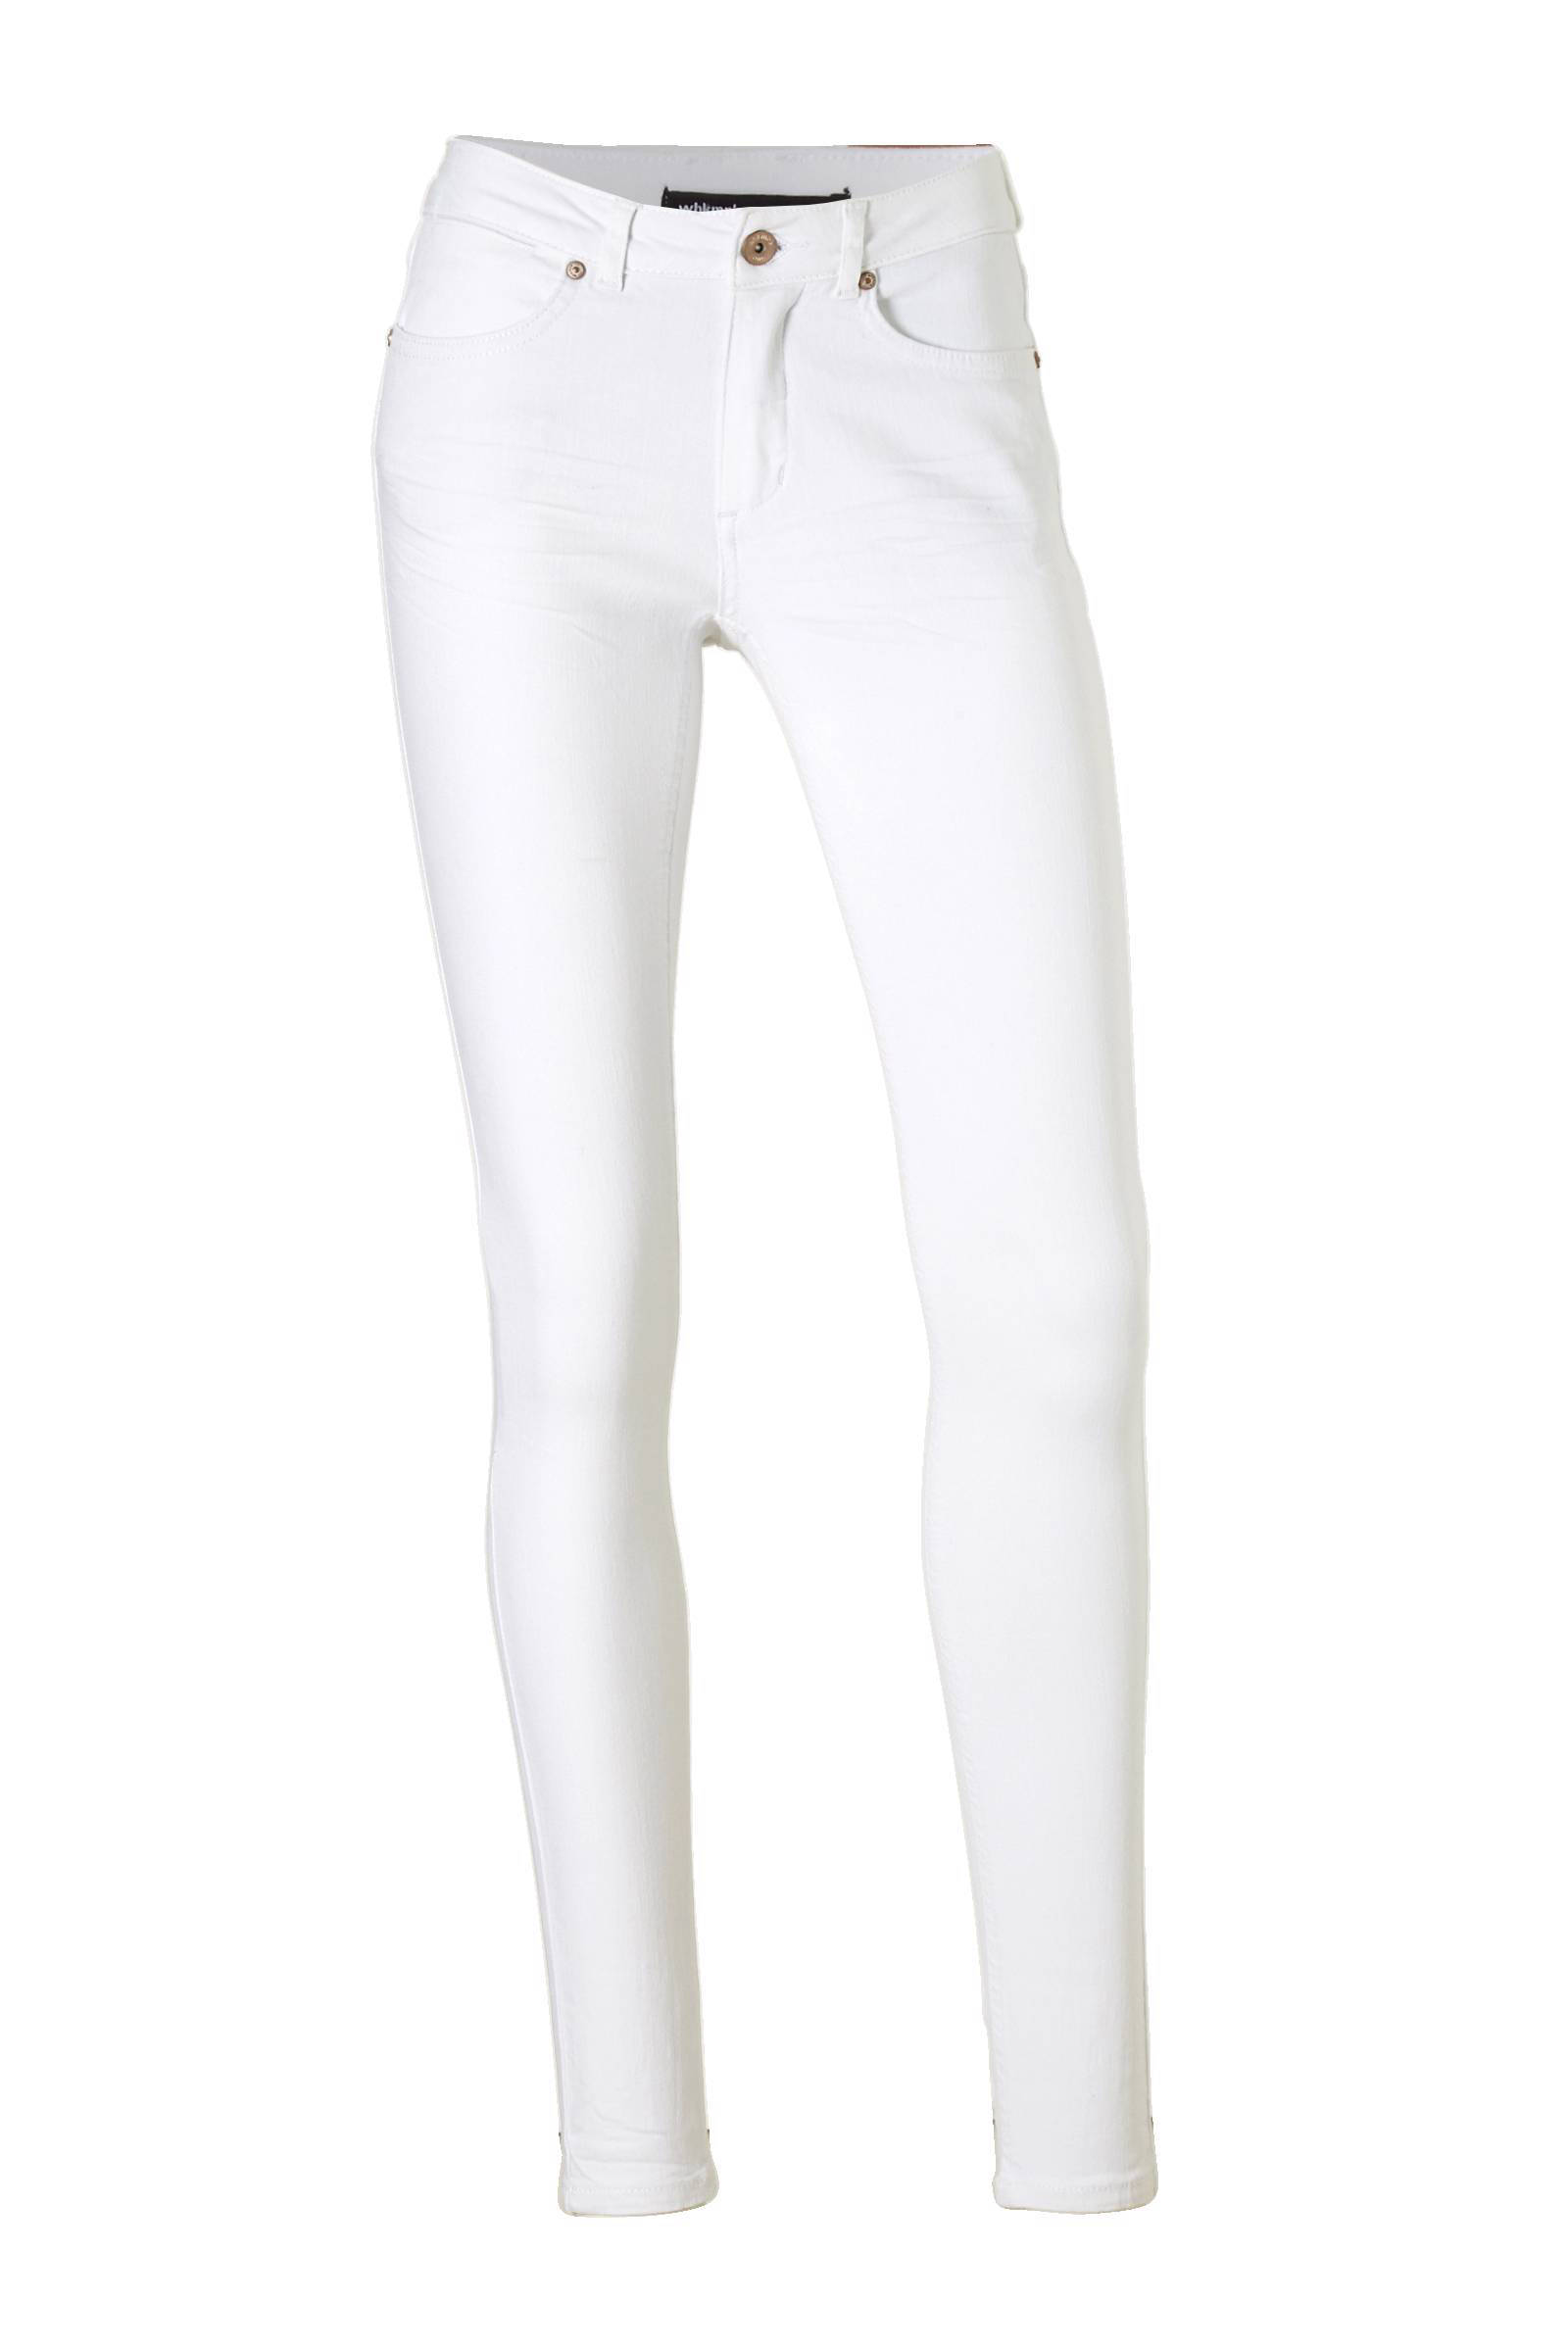 product afbeelding whkmp's own skinny non denim (dames)